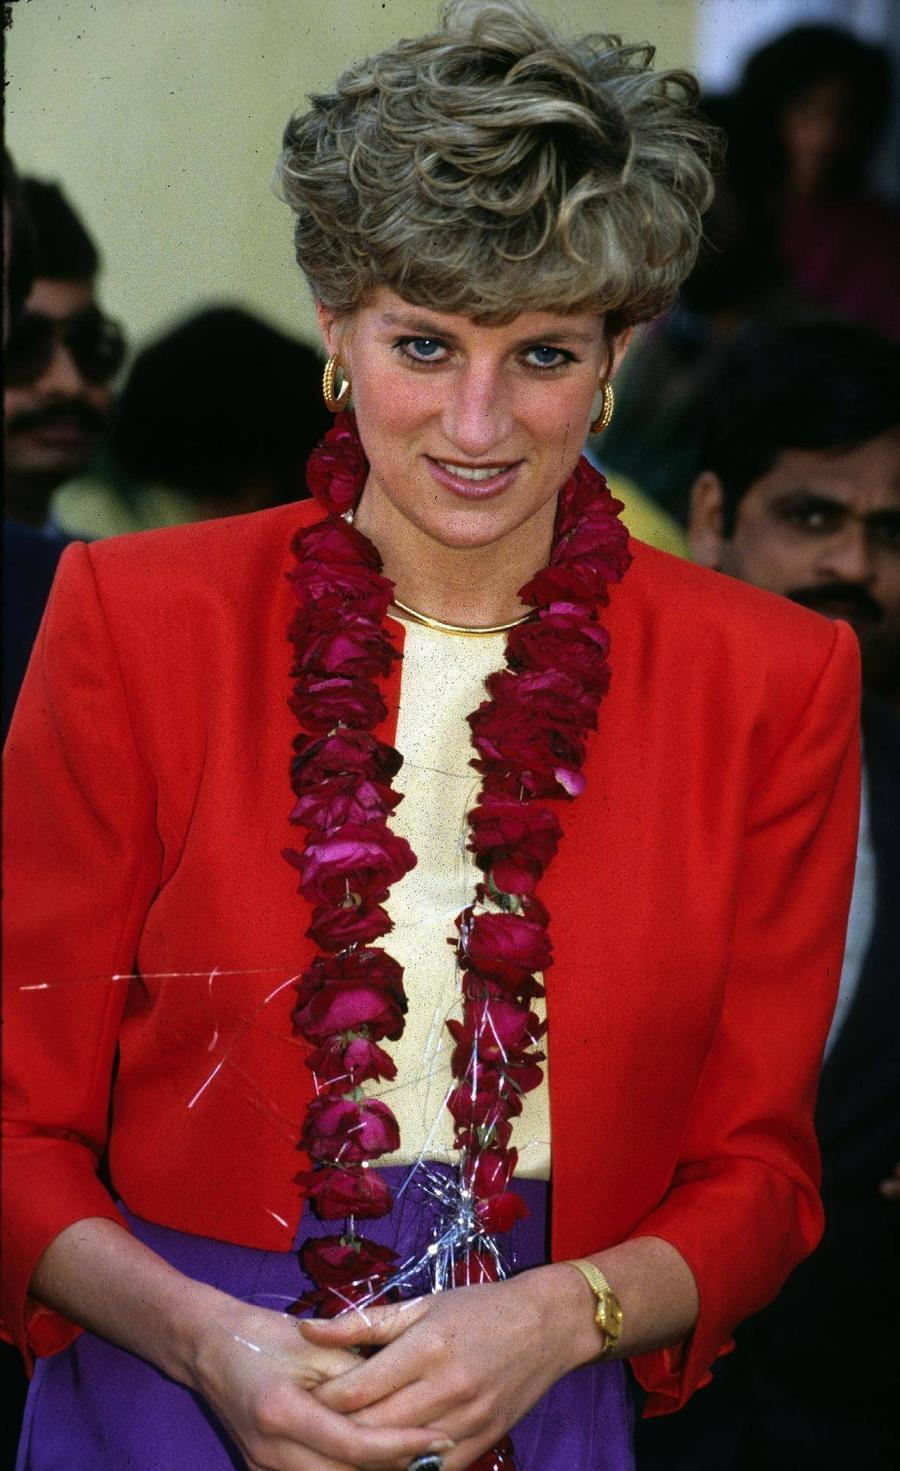 Princess Diana's Style To Be Celebrated In New Exhibition